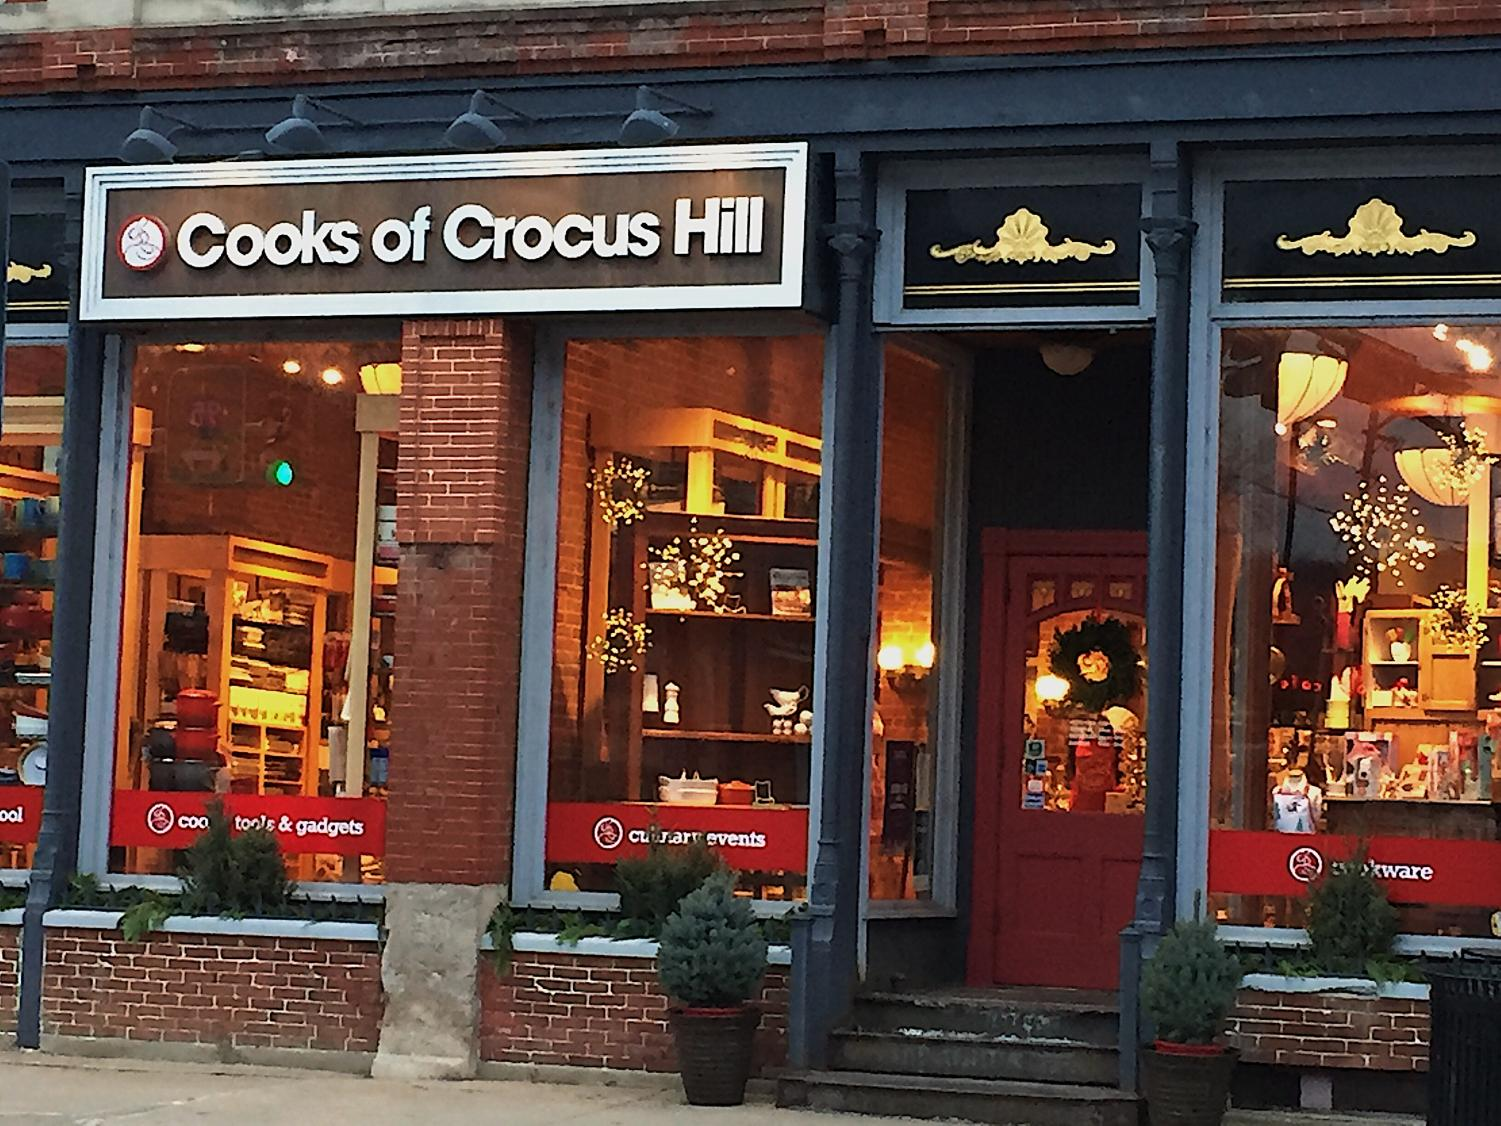 Cooks of Crocus Hill is a kitchen supply store with locations in Stillwater, St. Paul and Minneapolis. The stores are owned by husband and wife Karl Benson and Marie Dwyer. The store has been running since 1973.